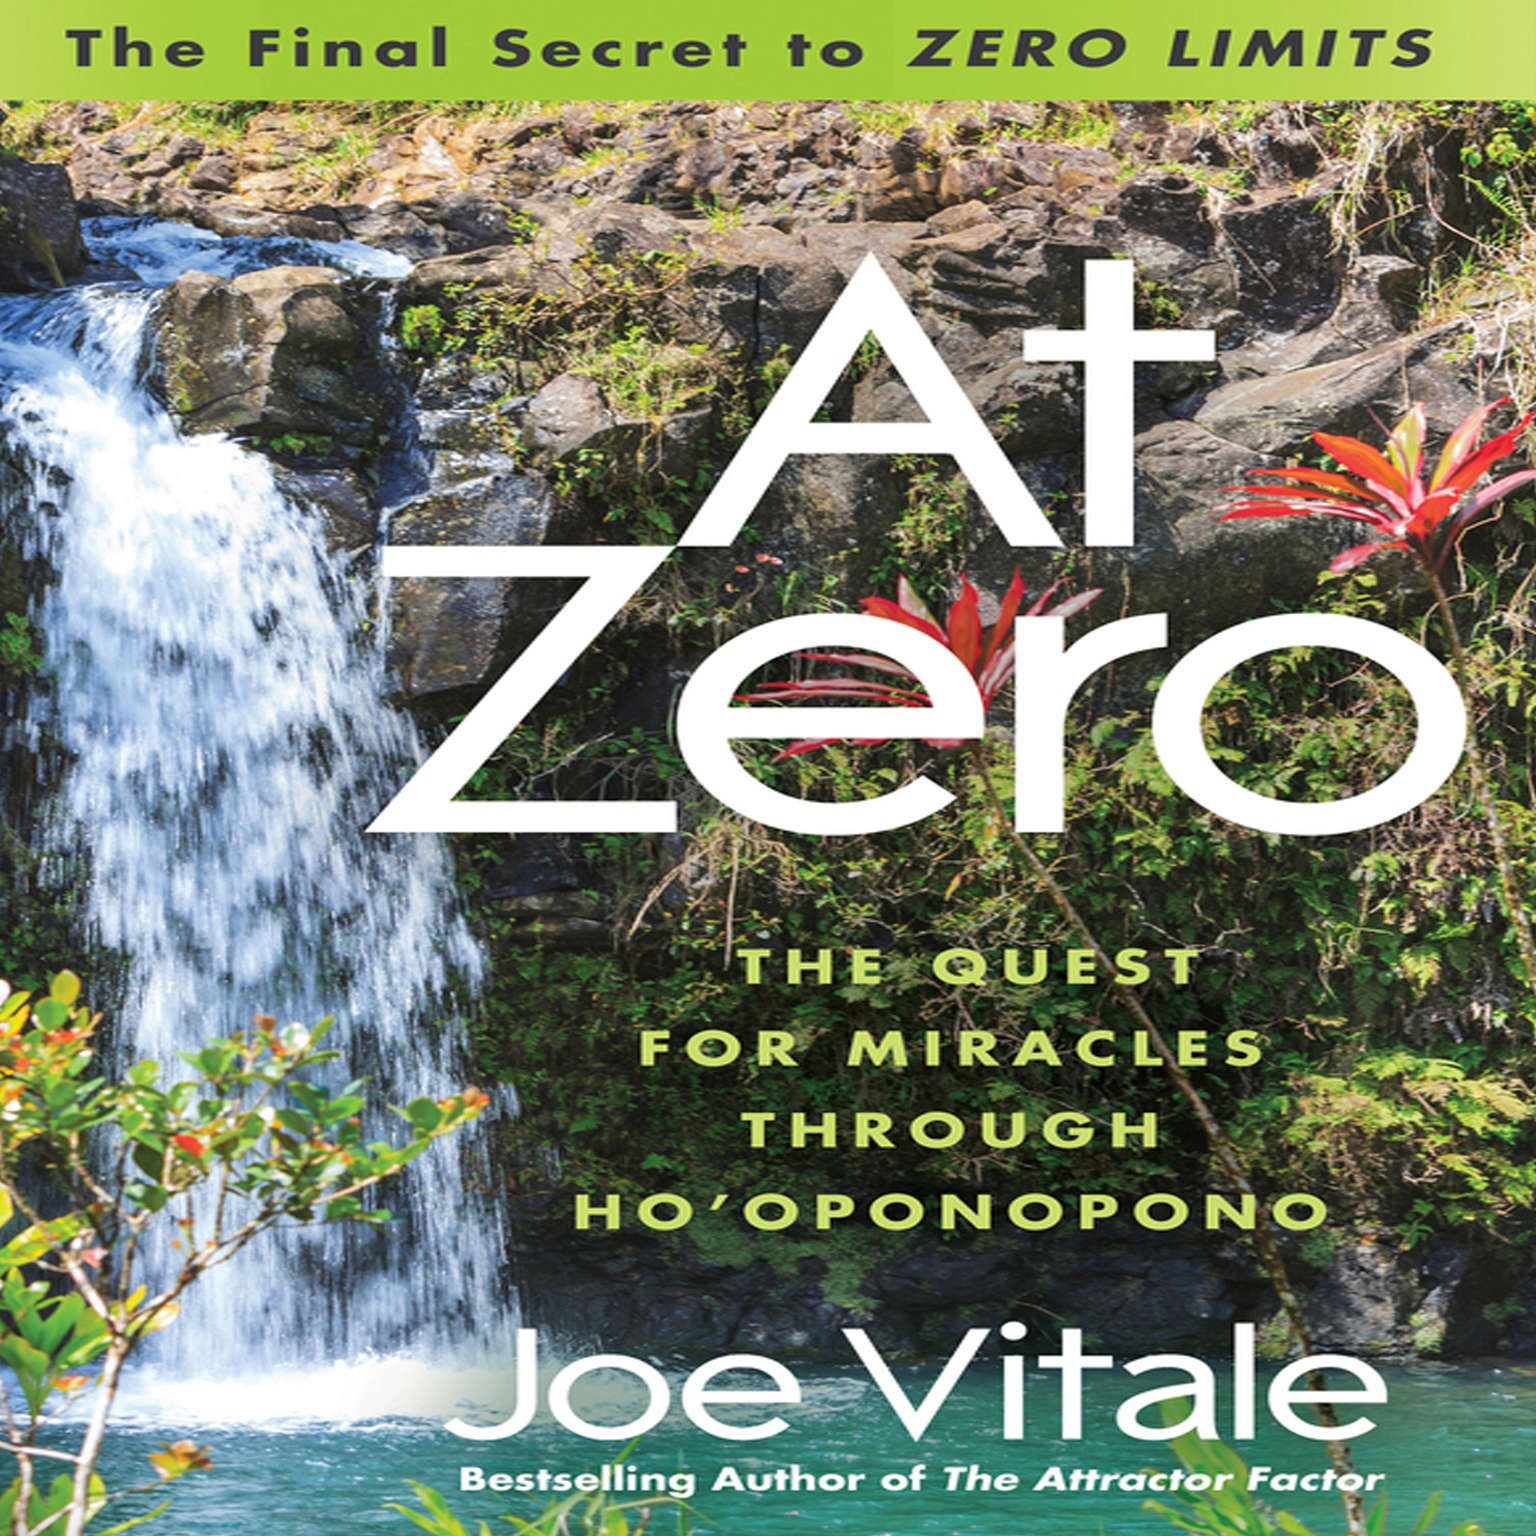 Printable At Zero: The Final Secret to 'Zero Limits' The Quest for Miracles Through Ho'Oponopono Audiobook Cover Art